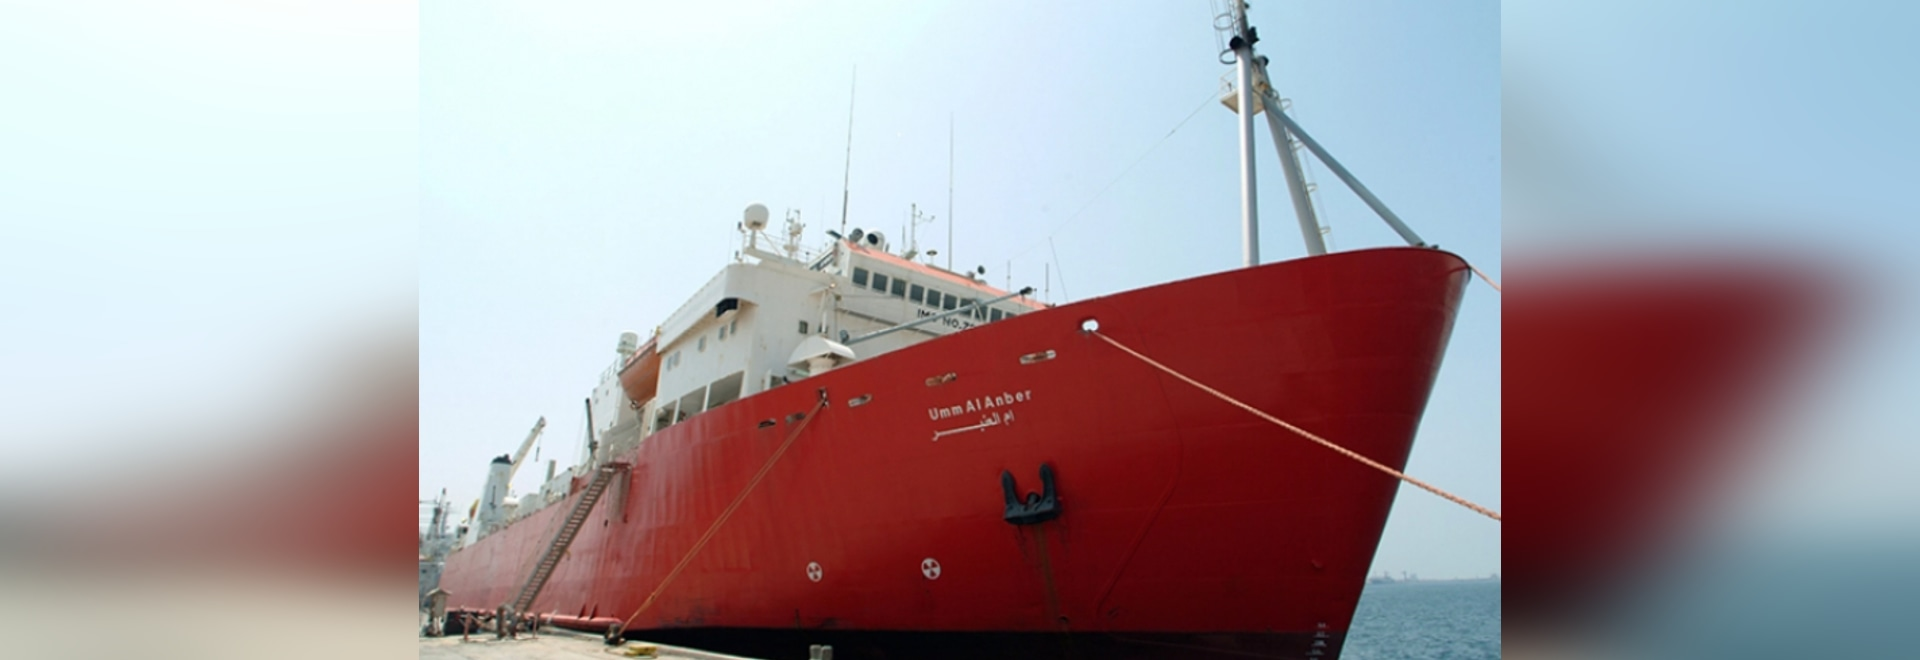 This E-Marine cable layer vessel is being upgraded with Wärtsilä solutions to achieve greater efficiency.